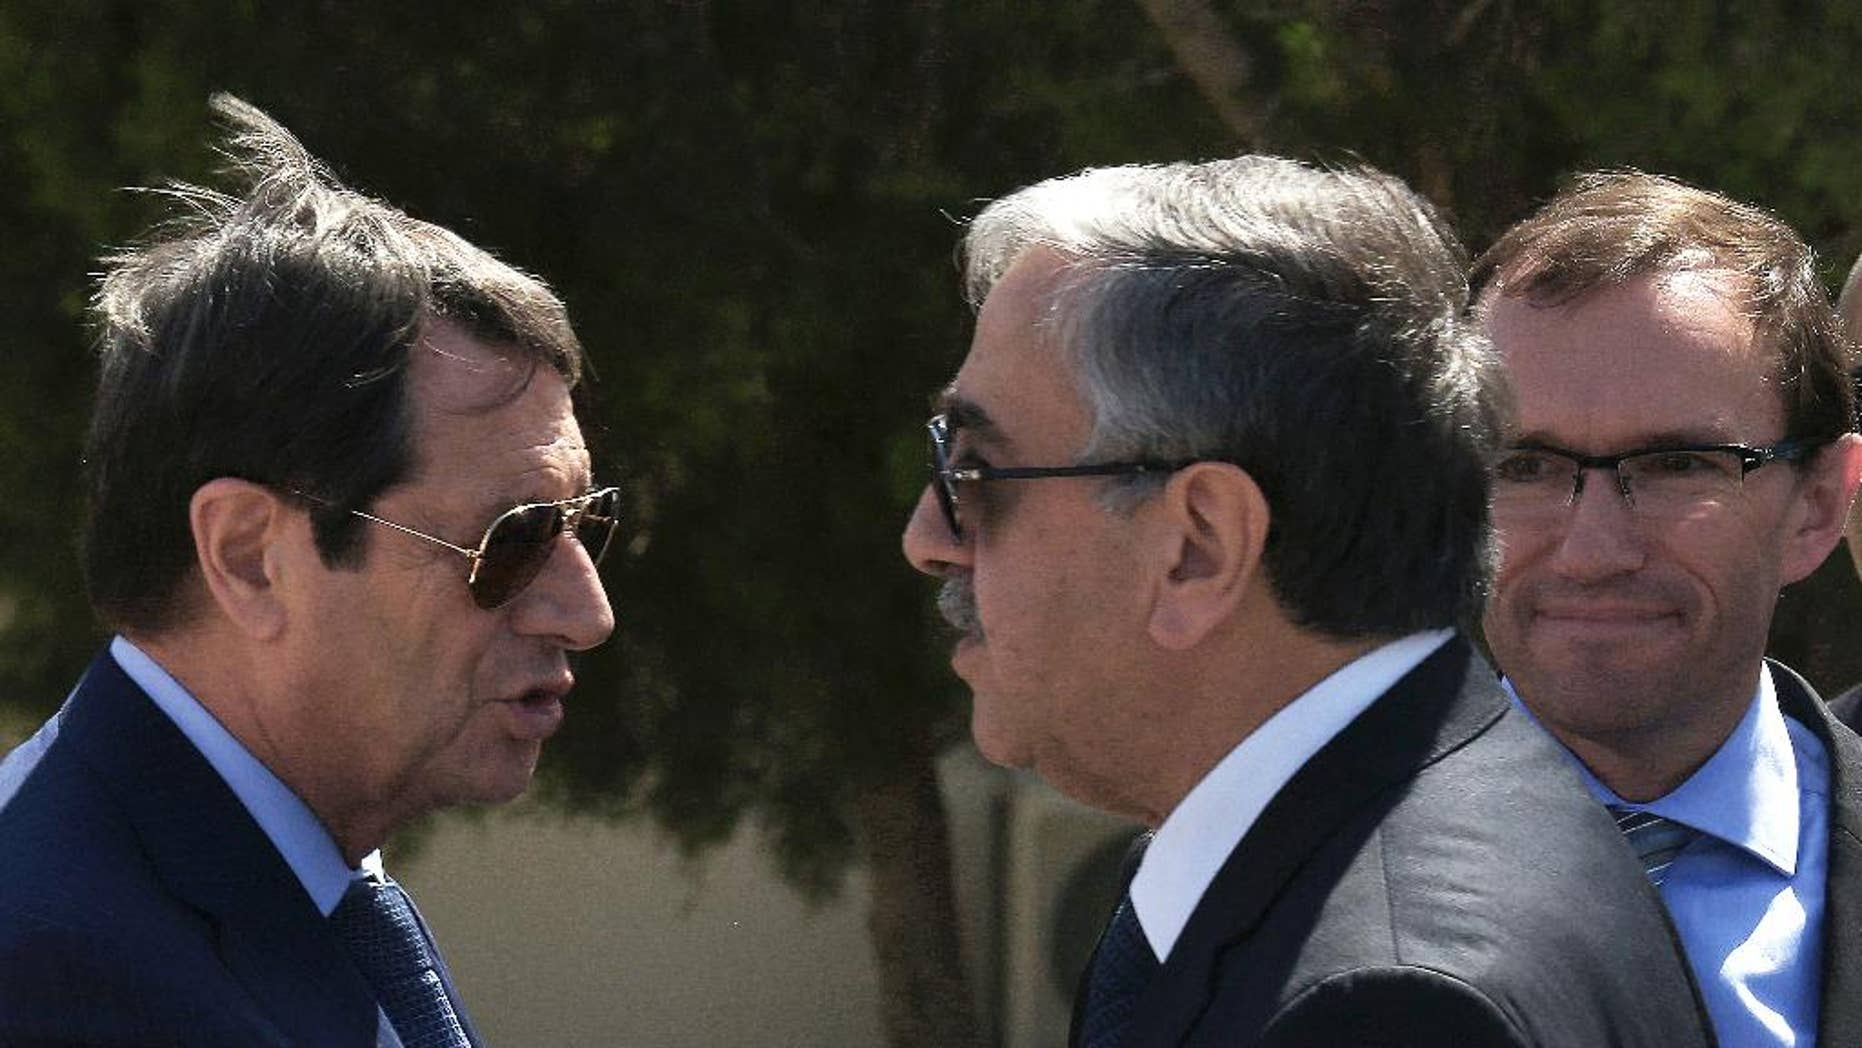 """FILE- In this Wednesday, Sept. 14, 2016 file photo, Cypriot President Nicos Anastasiades, left, and breakaway Turkish Cypriot leader Mustafa Akinci, right, talks as the UN Special Advisor of the Secretary-General Espen Barth Eide, right, looks on as they leave their talks aimed at reunifying the ethnically divided island, at the disused Nicosia airport inside a United Nations controlled buffer zone. Cyprus' president said Friday, Sept. 30, 2016, an insistence by breakaway Turkish Cypriots to cede Turkey the right to militarily intervene under a hoped-for deal reunifying the divided Mediterranean island nation is """"excessive and unjustified."""" (AP Photo/Petros Karadjias, File)"""